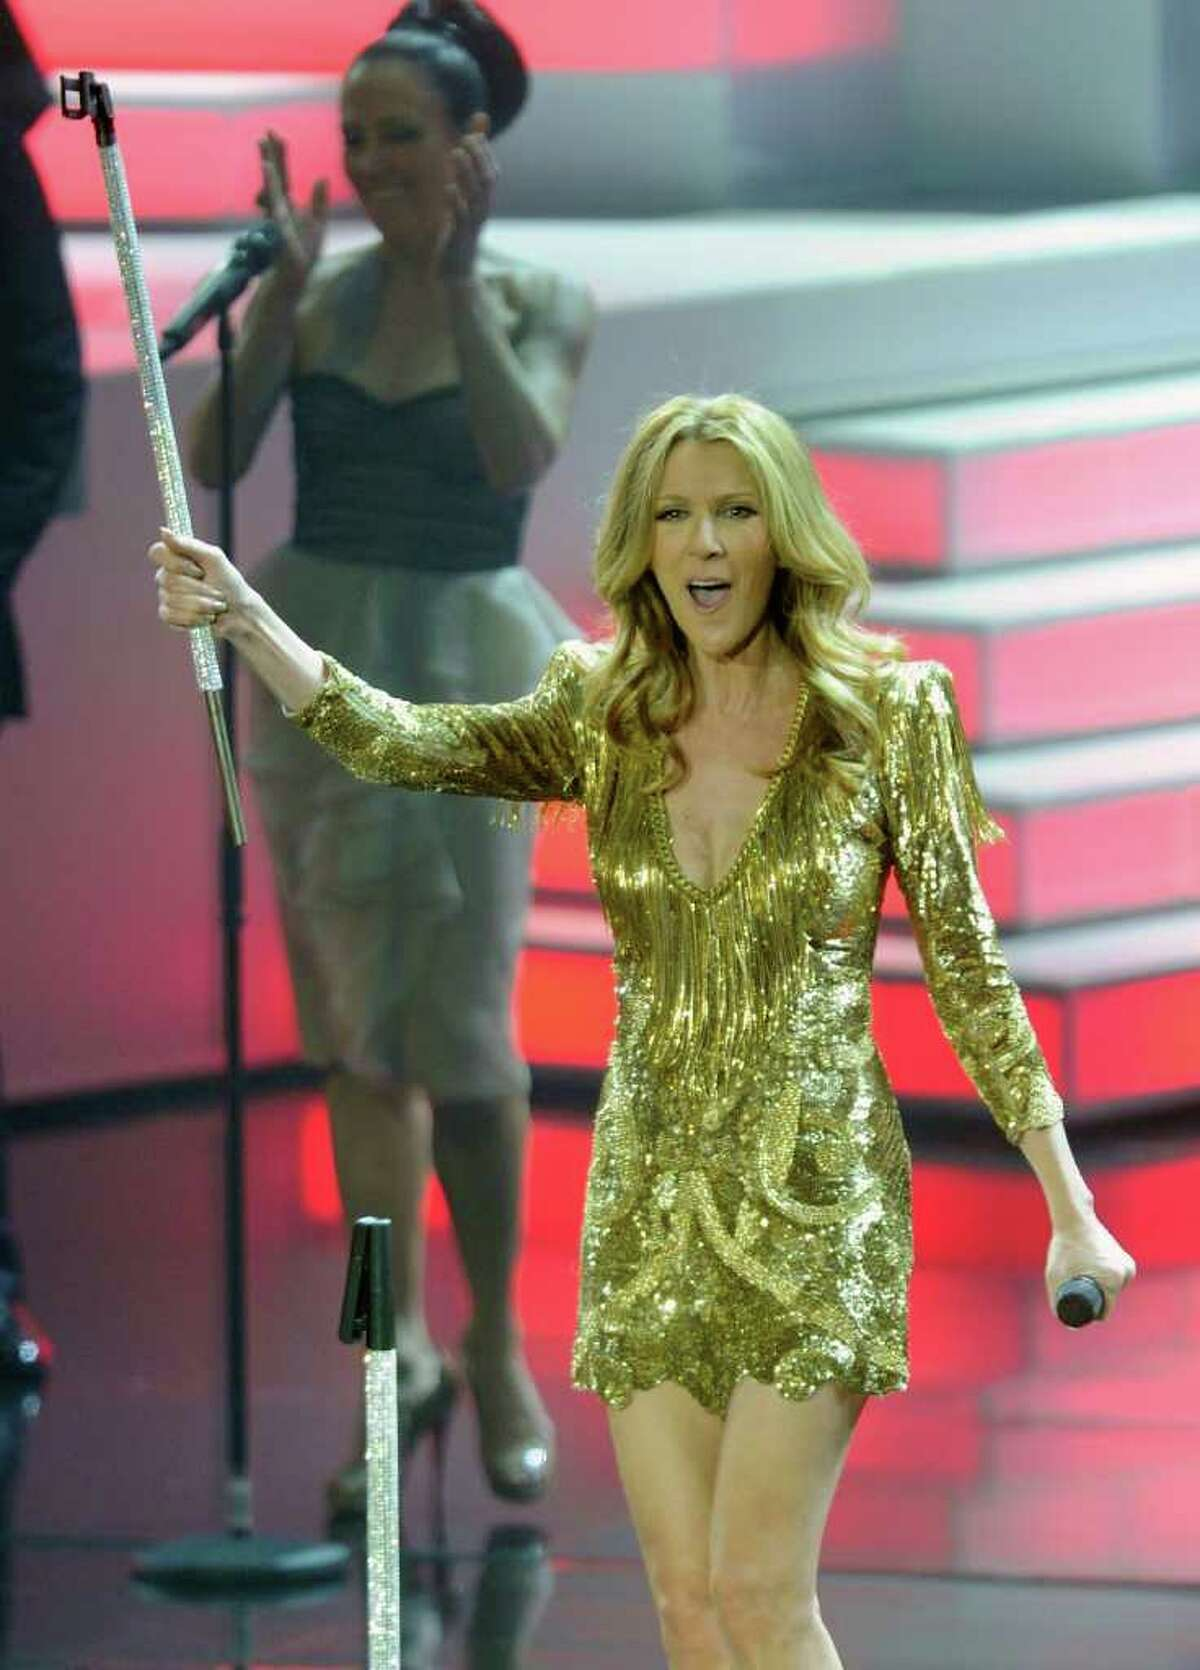 Singer Celine Dion performs during the first night of her new show at The Colosseum at Caesars Palace. (Photo by Ethan Miller/Getty Images)